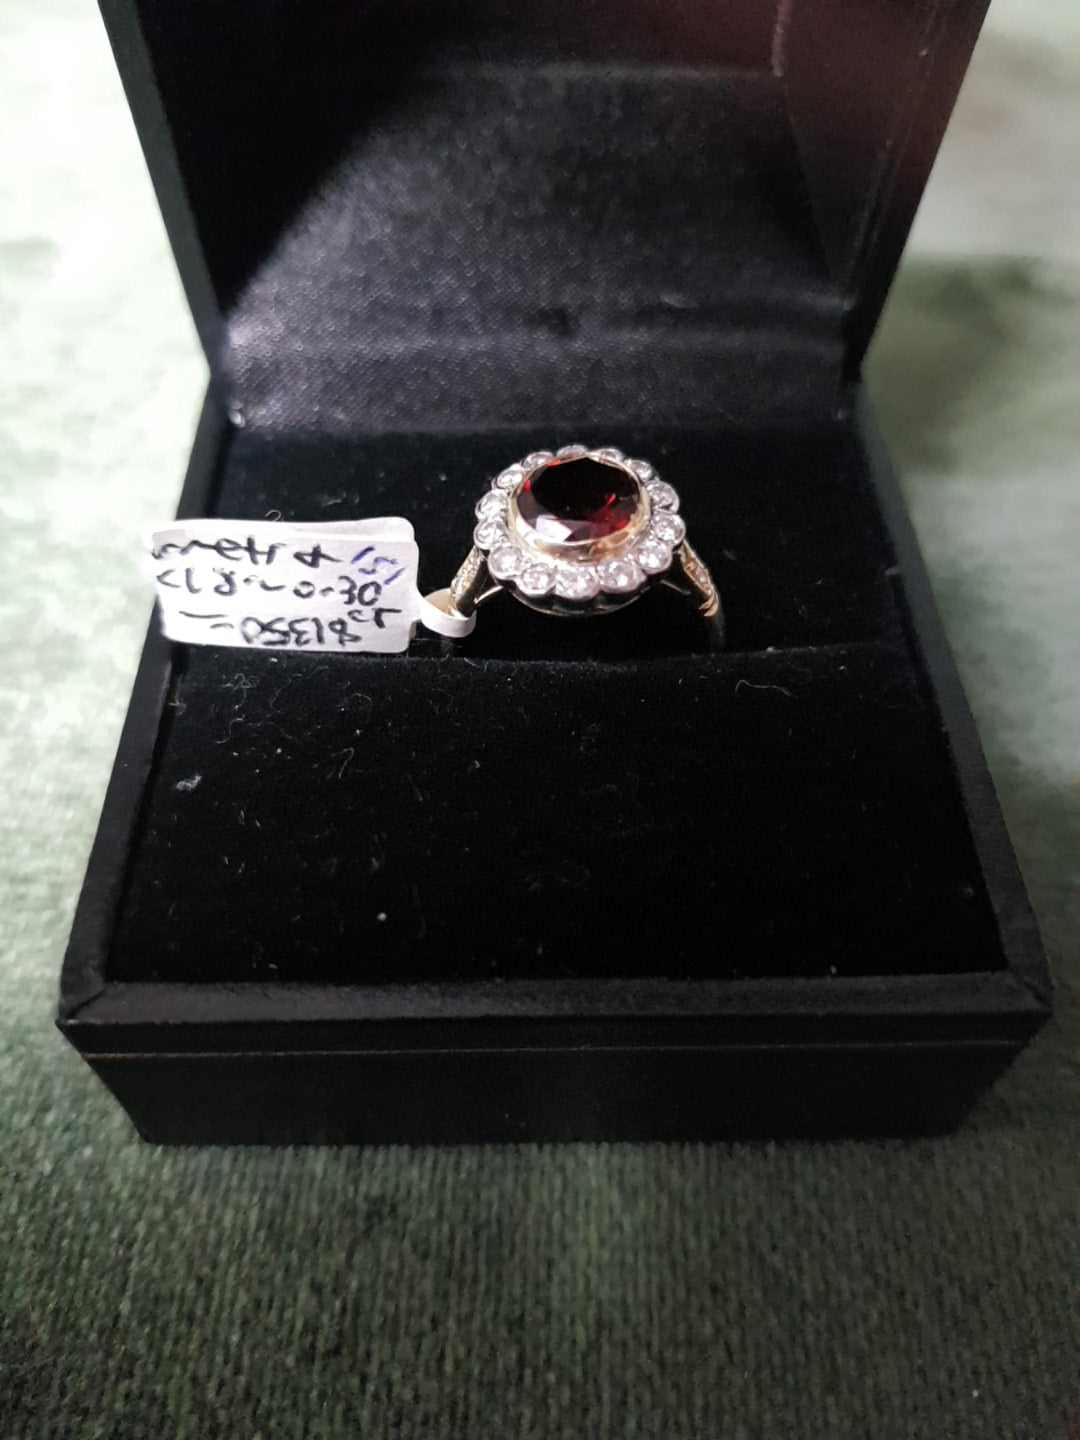 18ct Gold and Diamonds x 18, approx 0.30ct combined, and Garnets ring #151